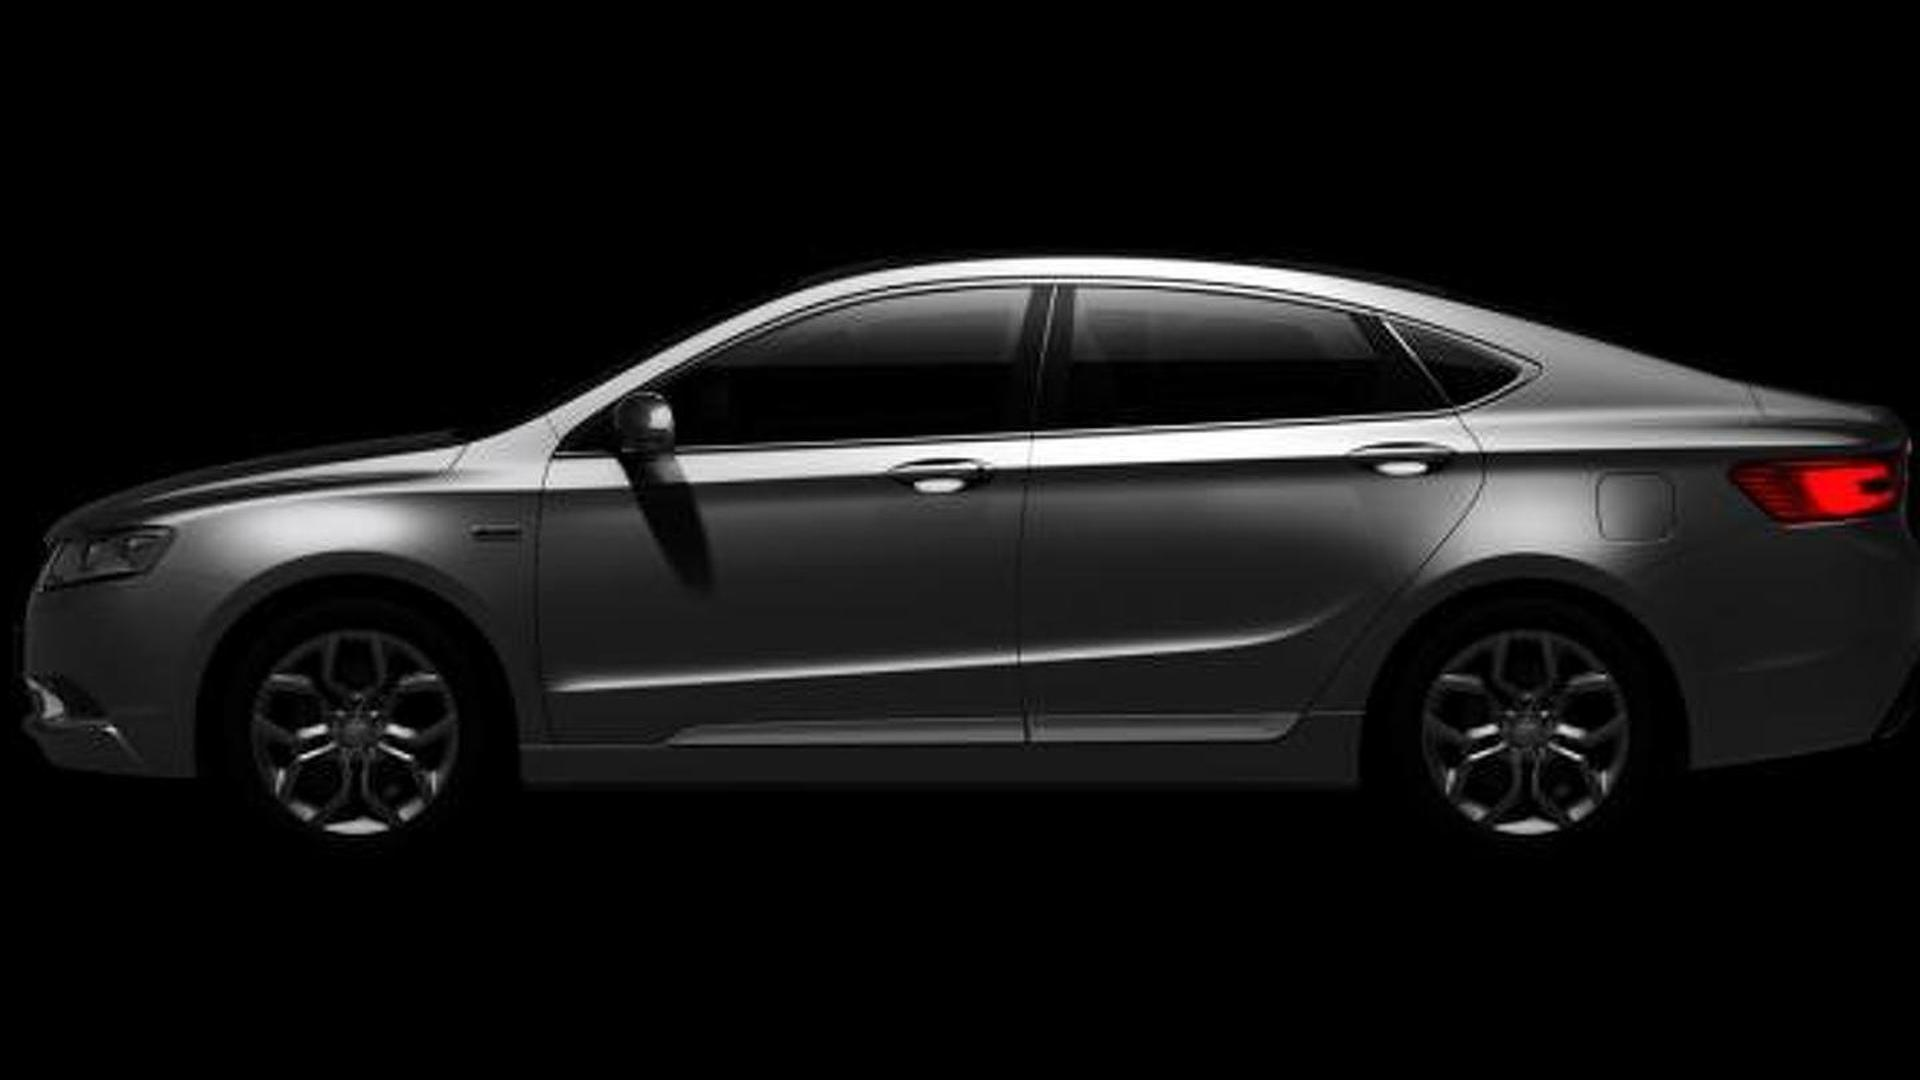 Geely GC9 flagship model previewed ahead of reveal at Guangzhou Auto Show